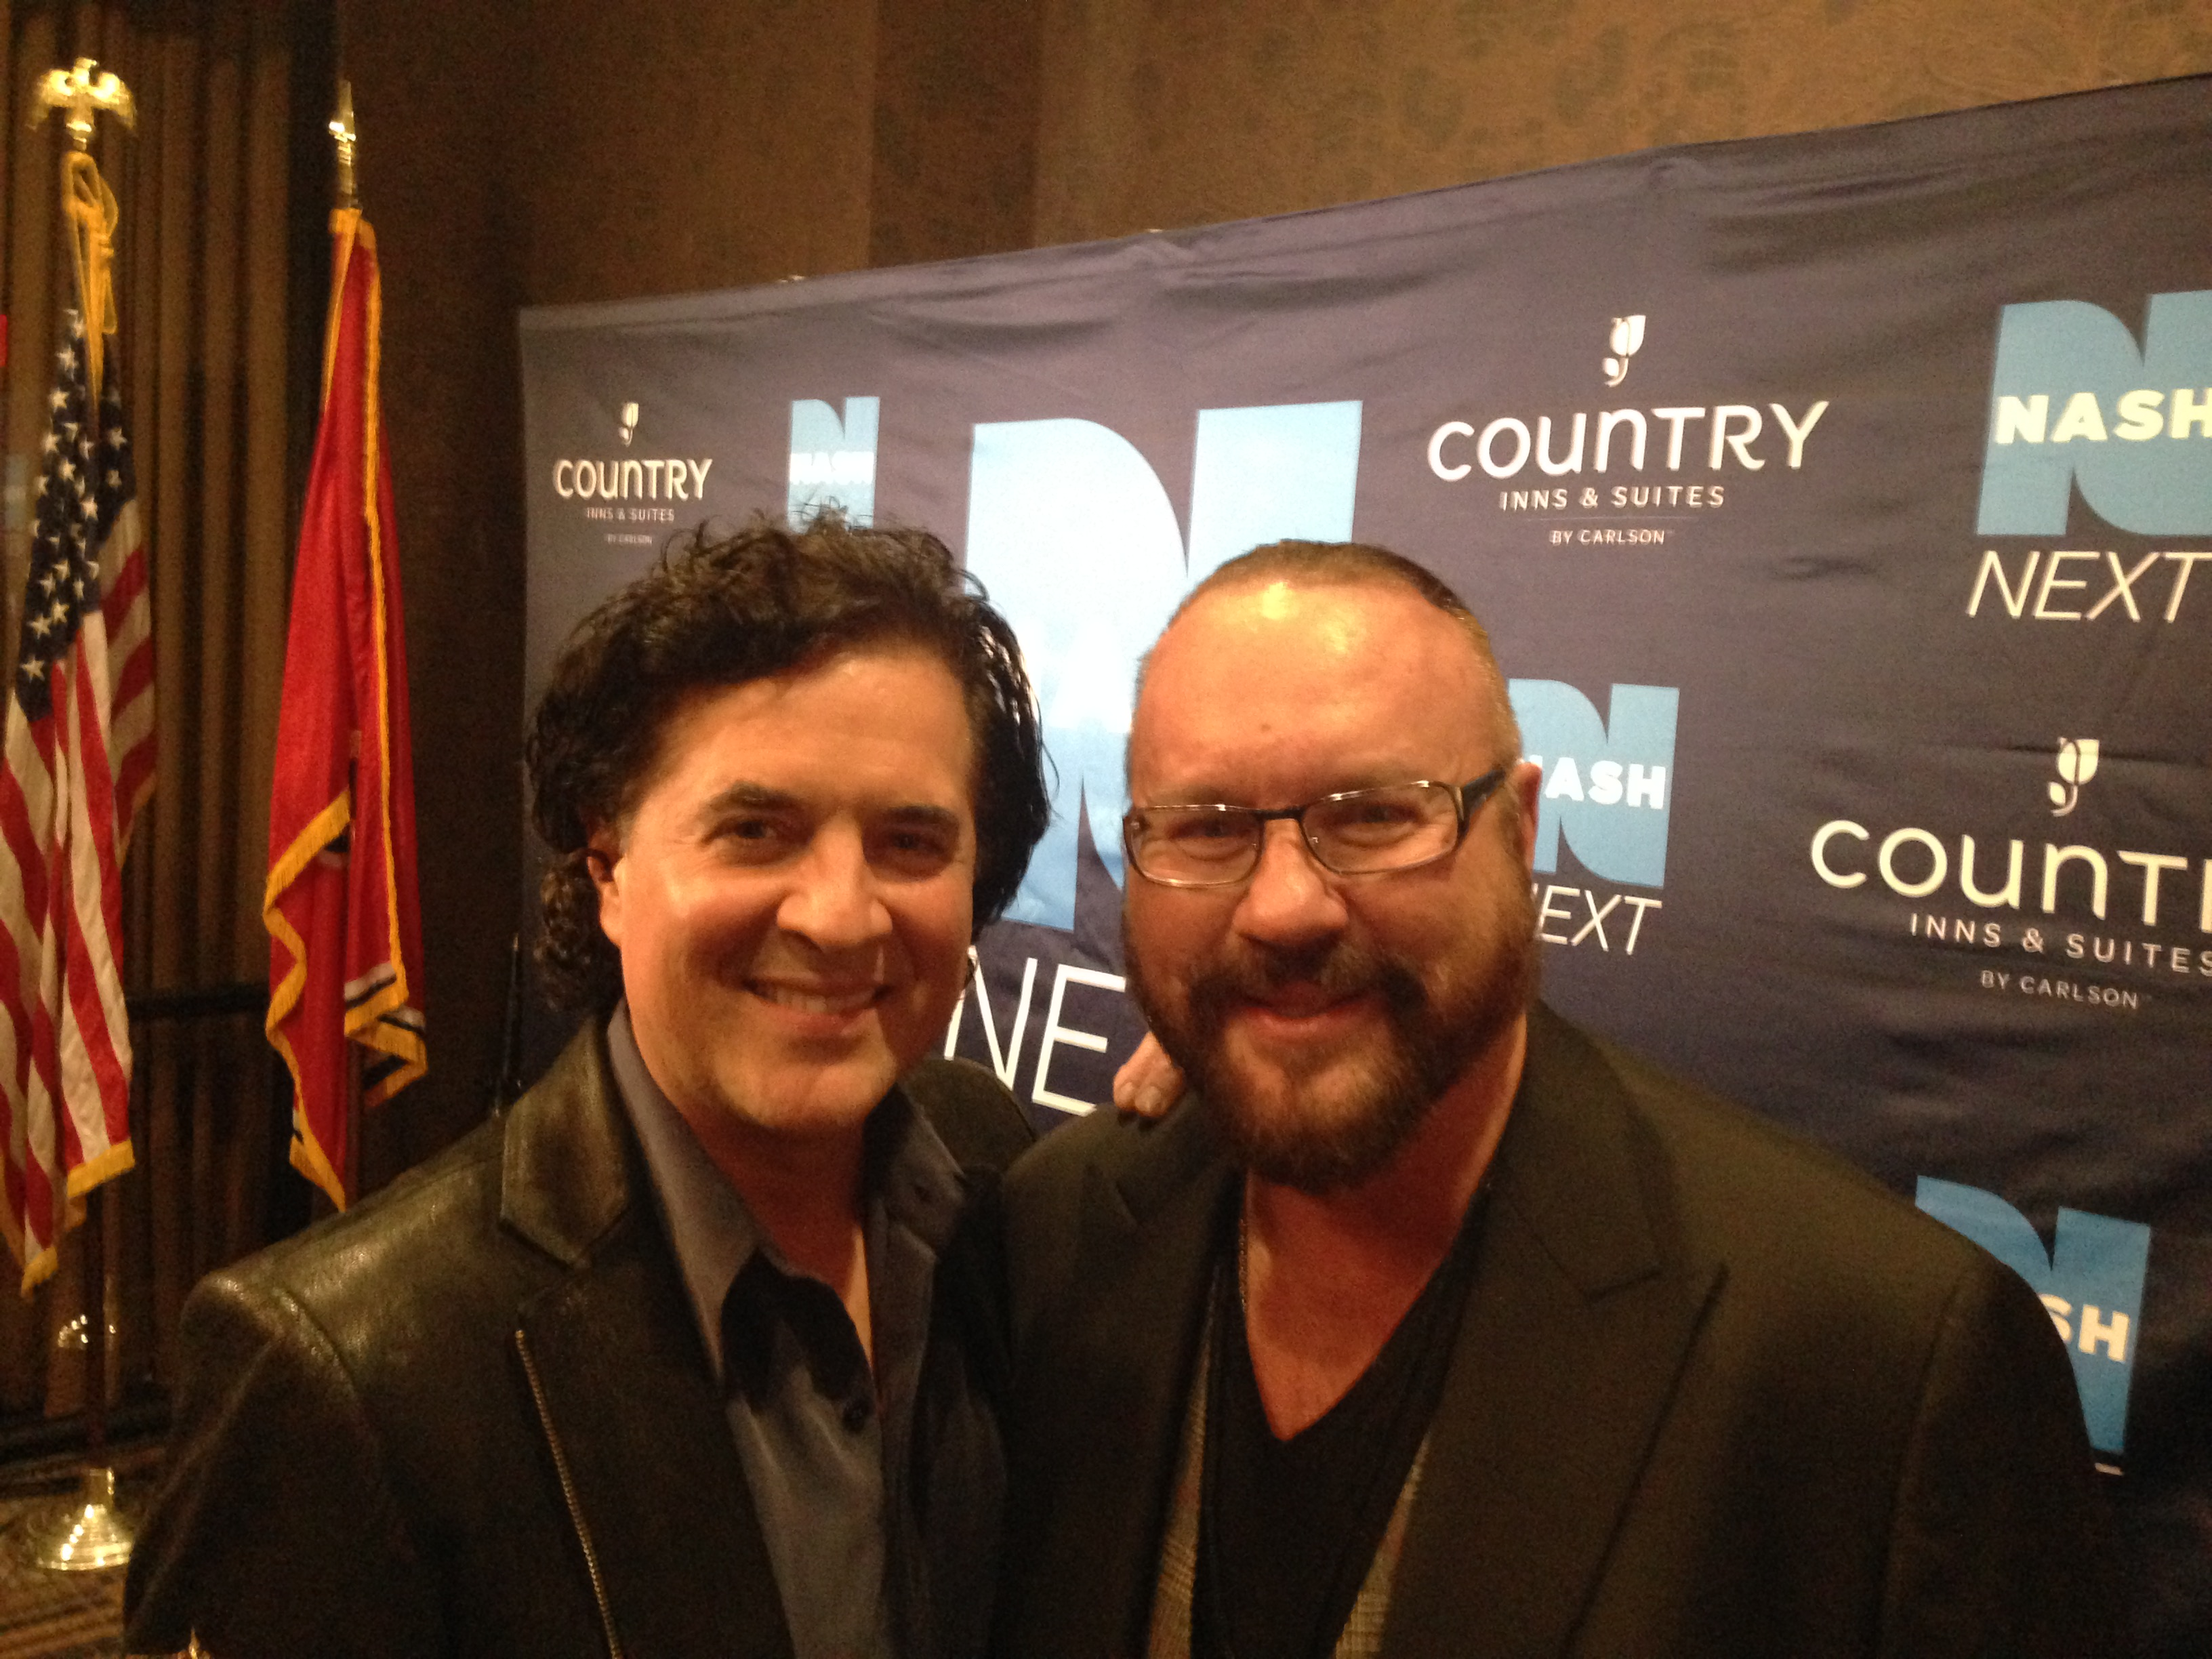 Desmond Child & Scott Borchetta at NASH Next event happening now at the Wildhorse Saloon Nashville